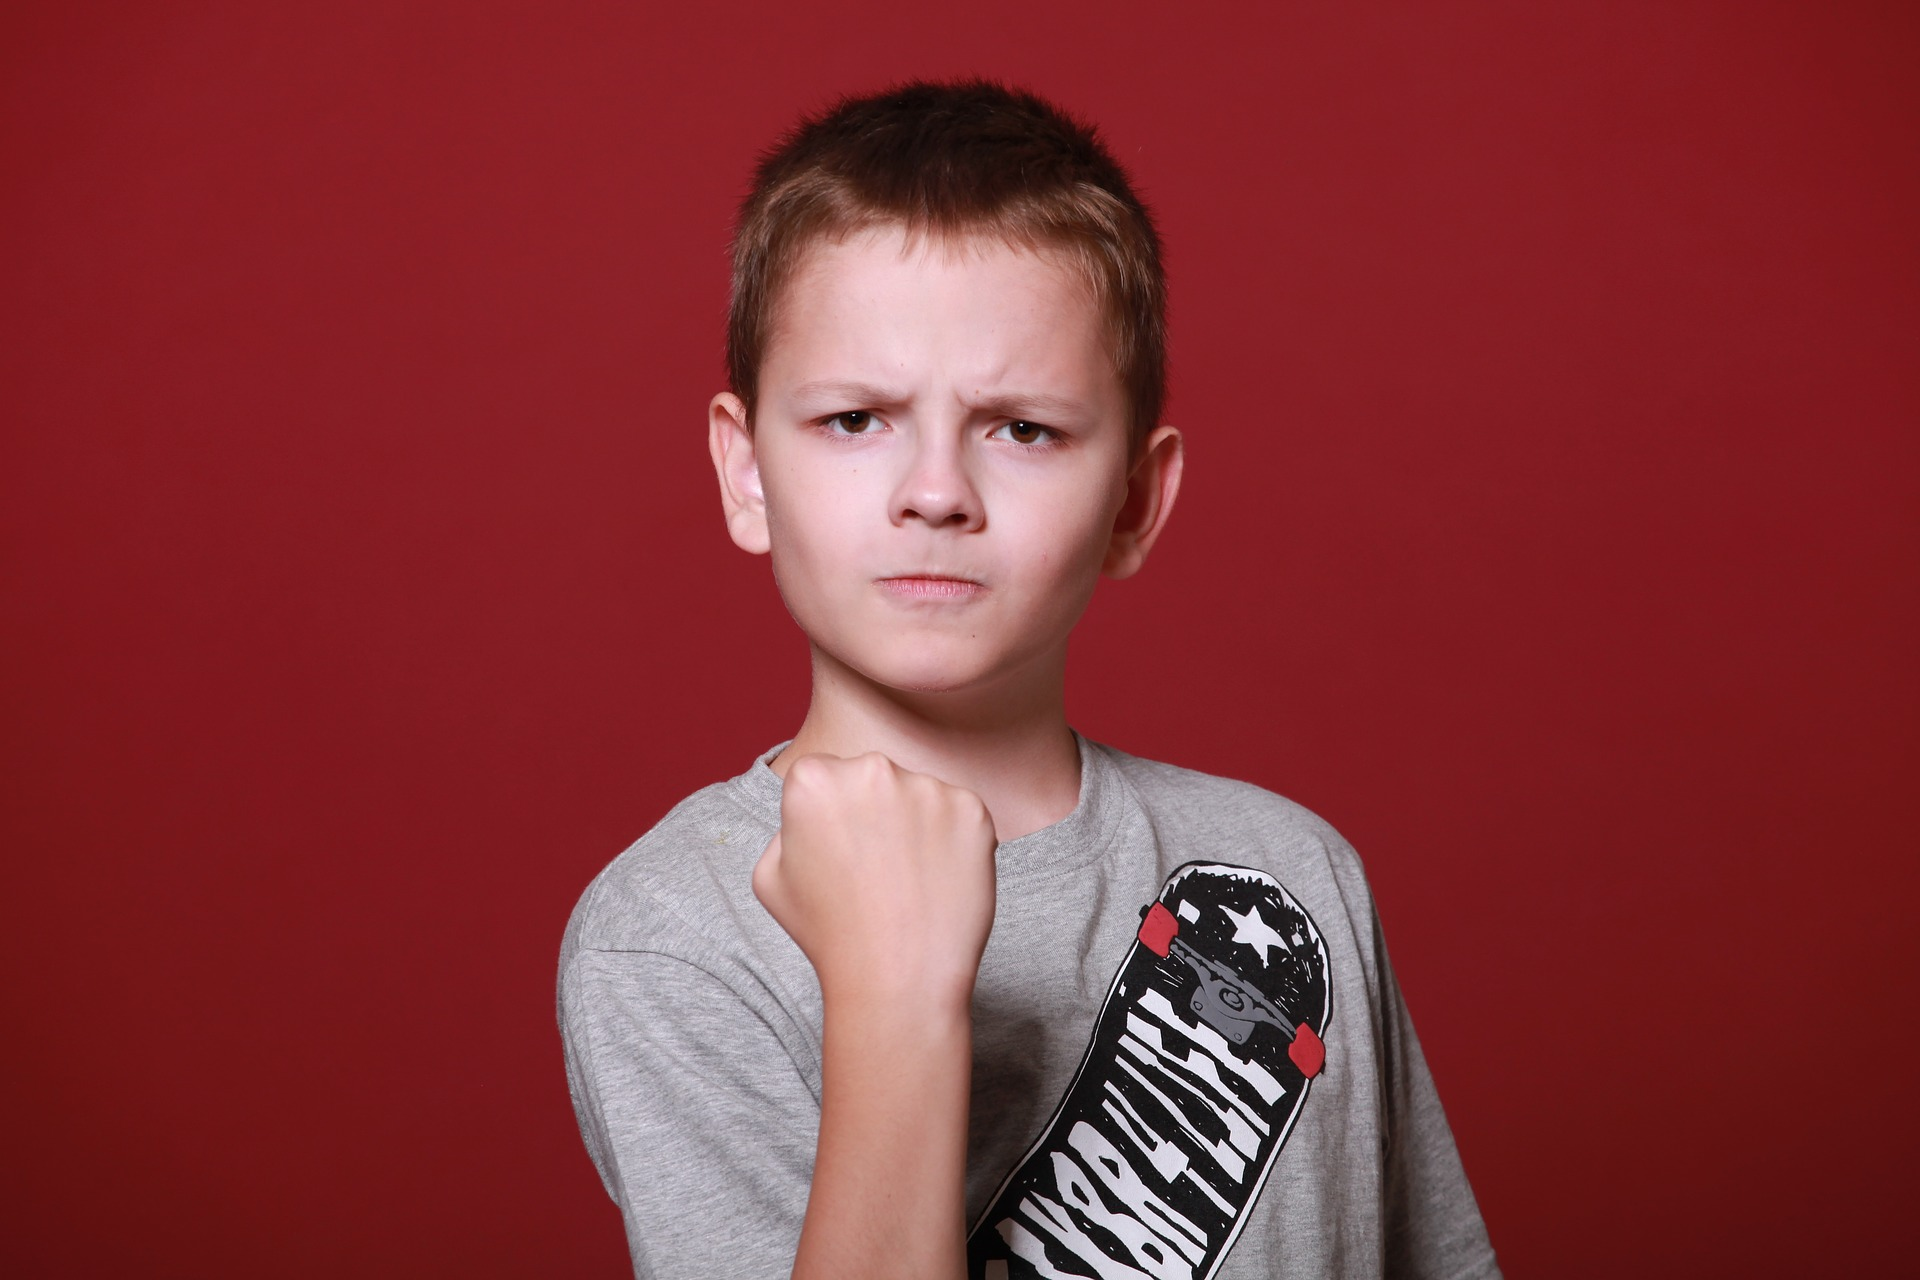 Anger and agression in children, Parent Help advice